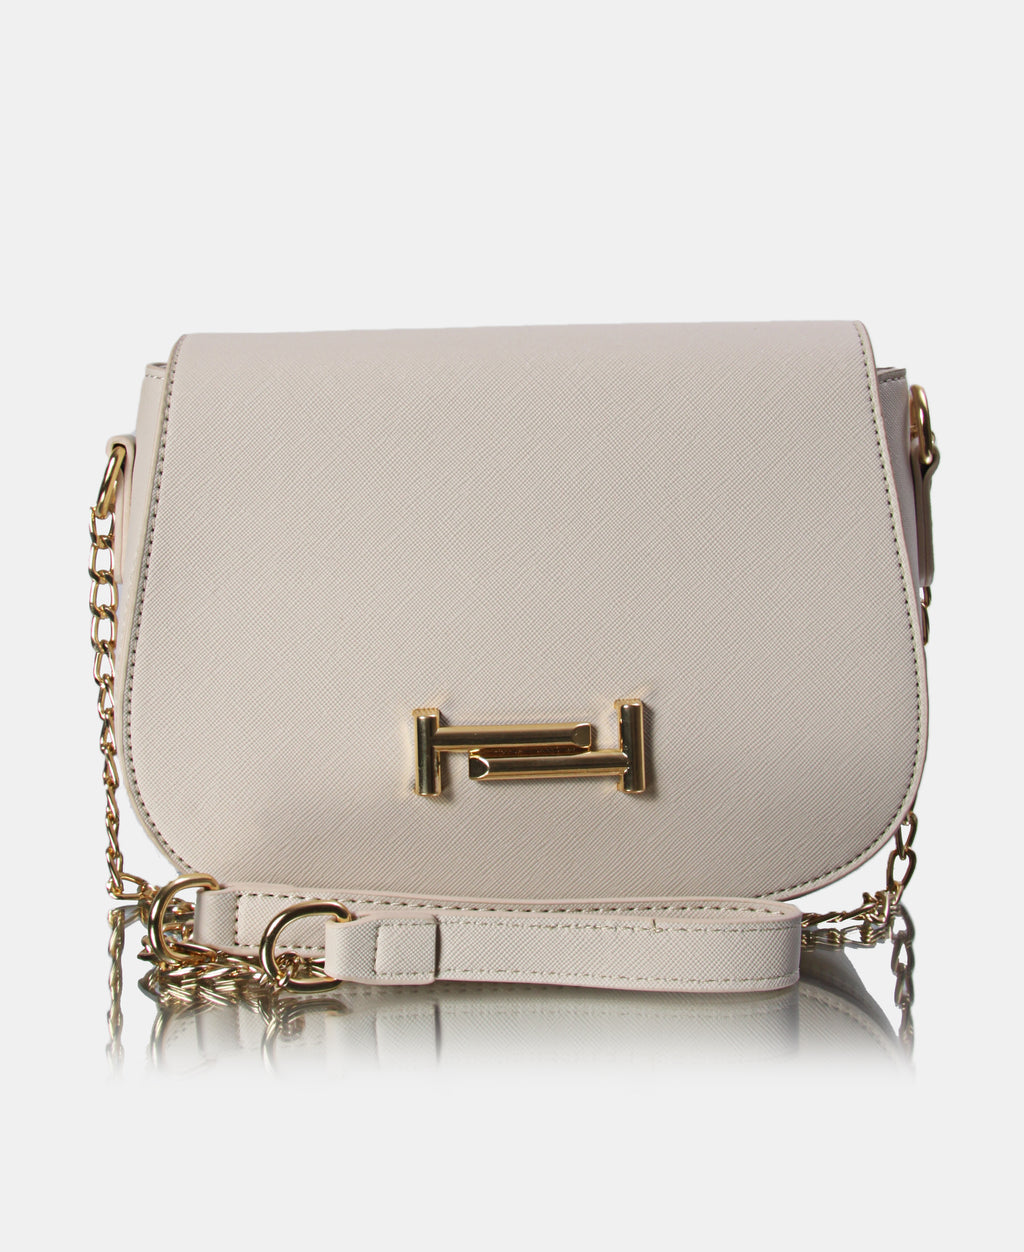 Small Structured Crossbody Bag - Beige